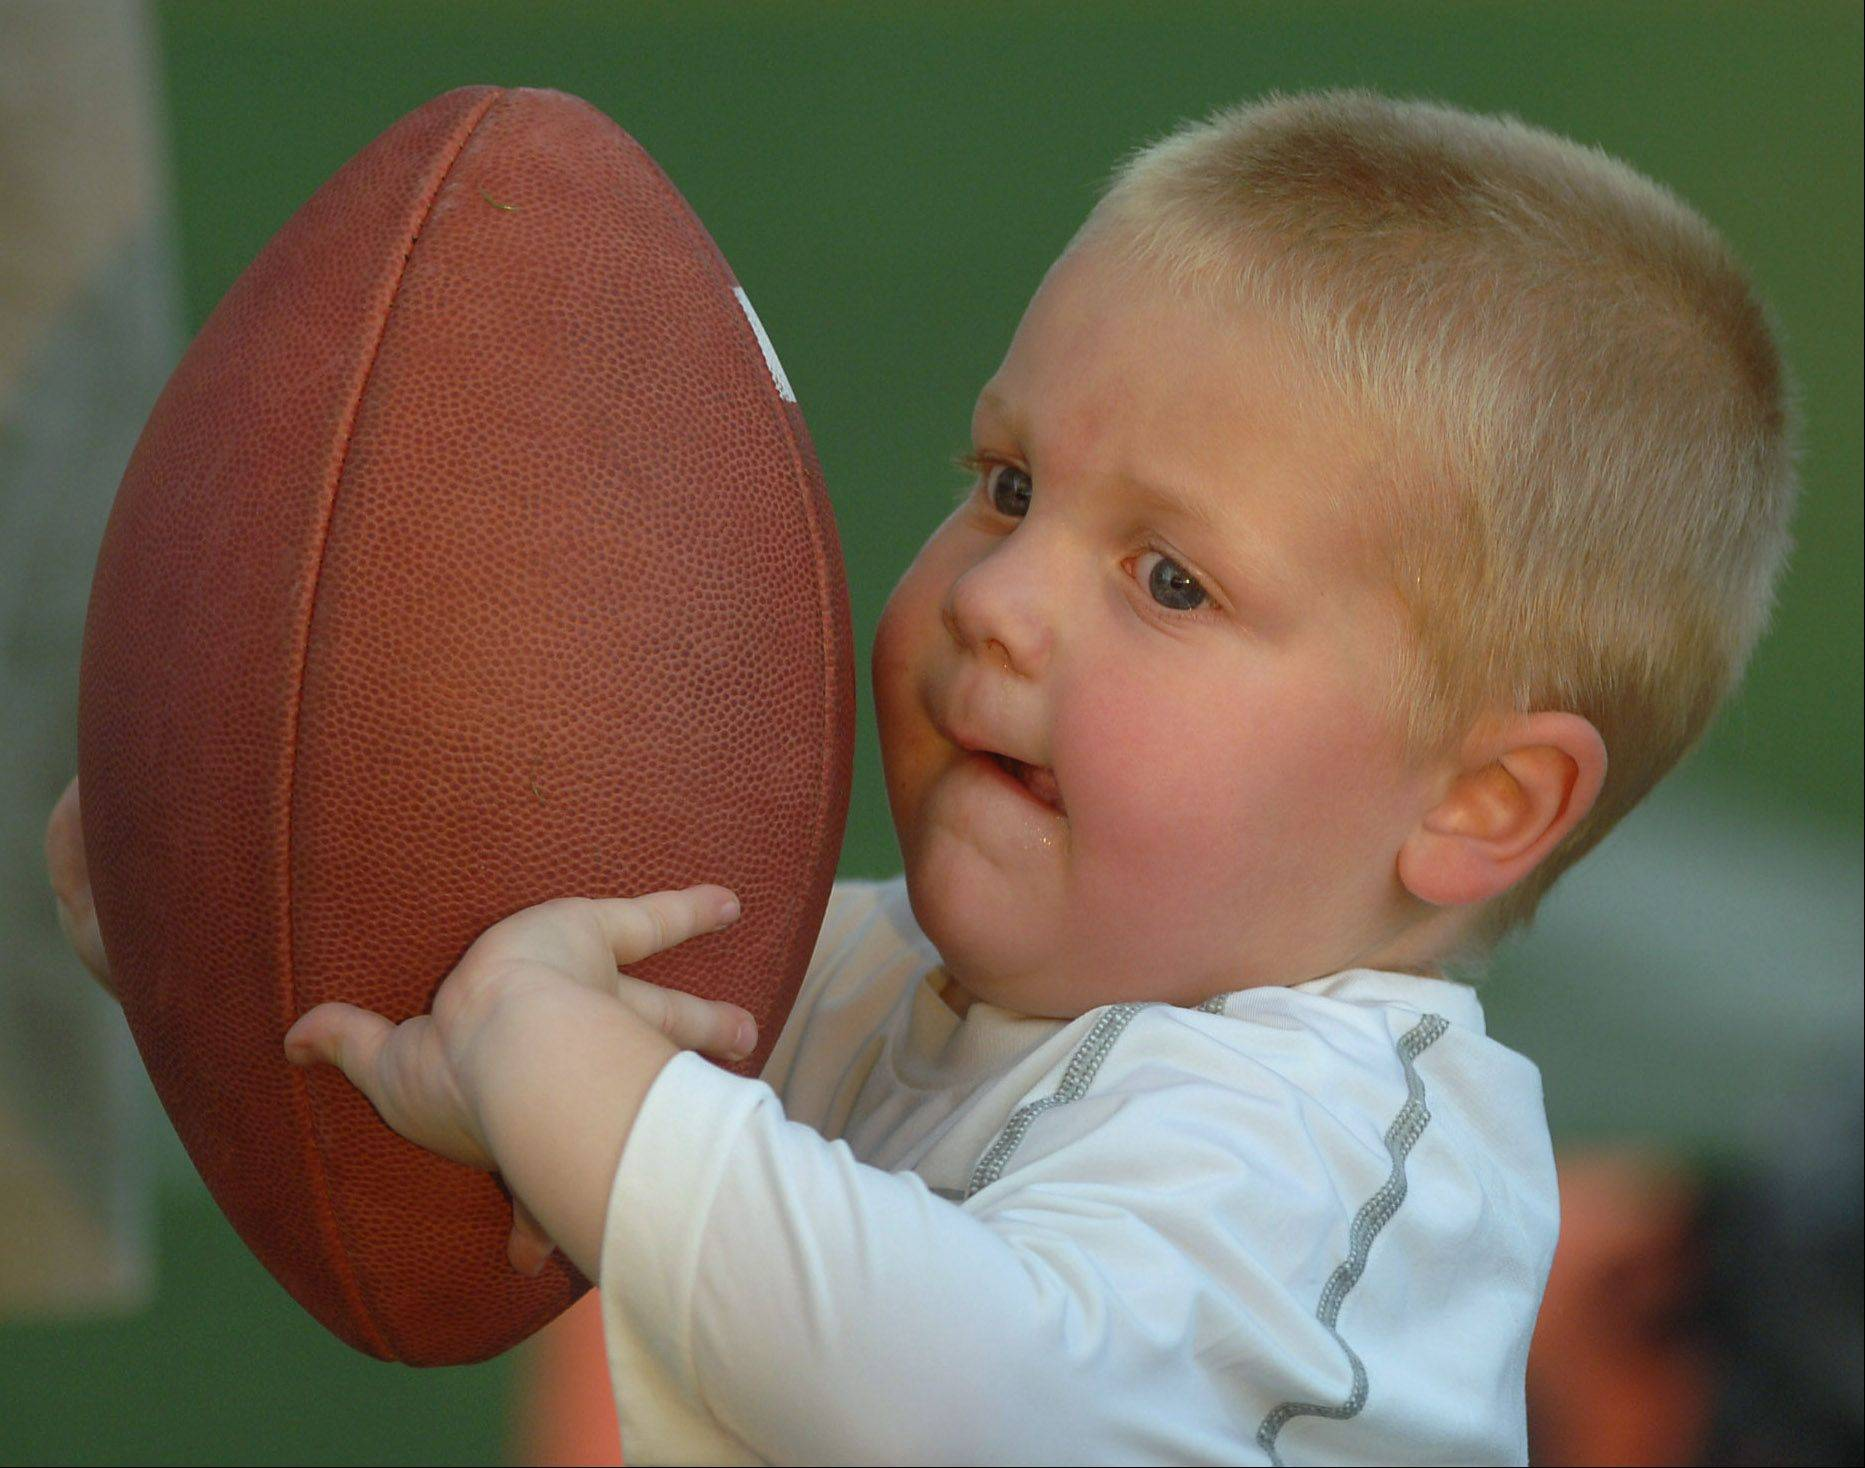 Two-year-old Quinten Boekholder tries out his football handling skills Friday night during a Lake Zurich home game against Fremd. Quinten's dad, Nate Boekholder, is an assistant varsity football coach for the Lake Zurich Bears.